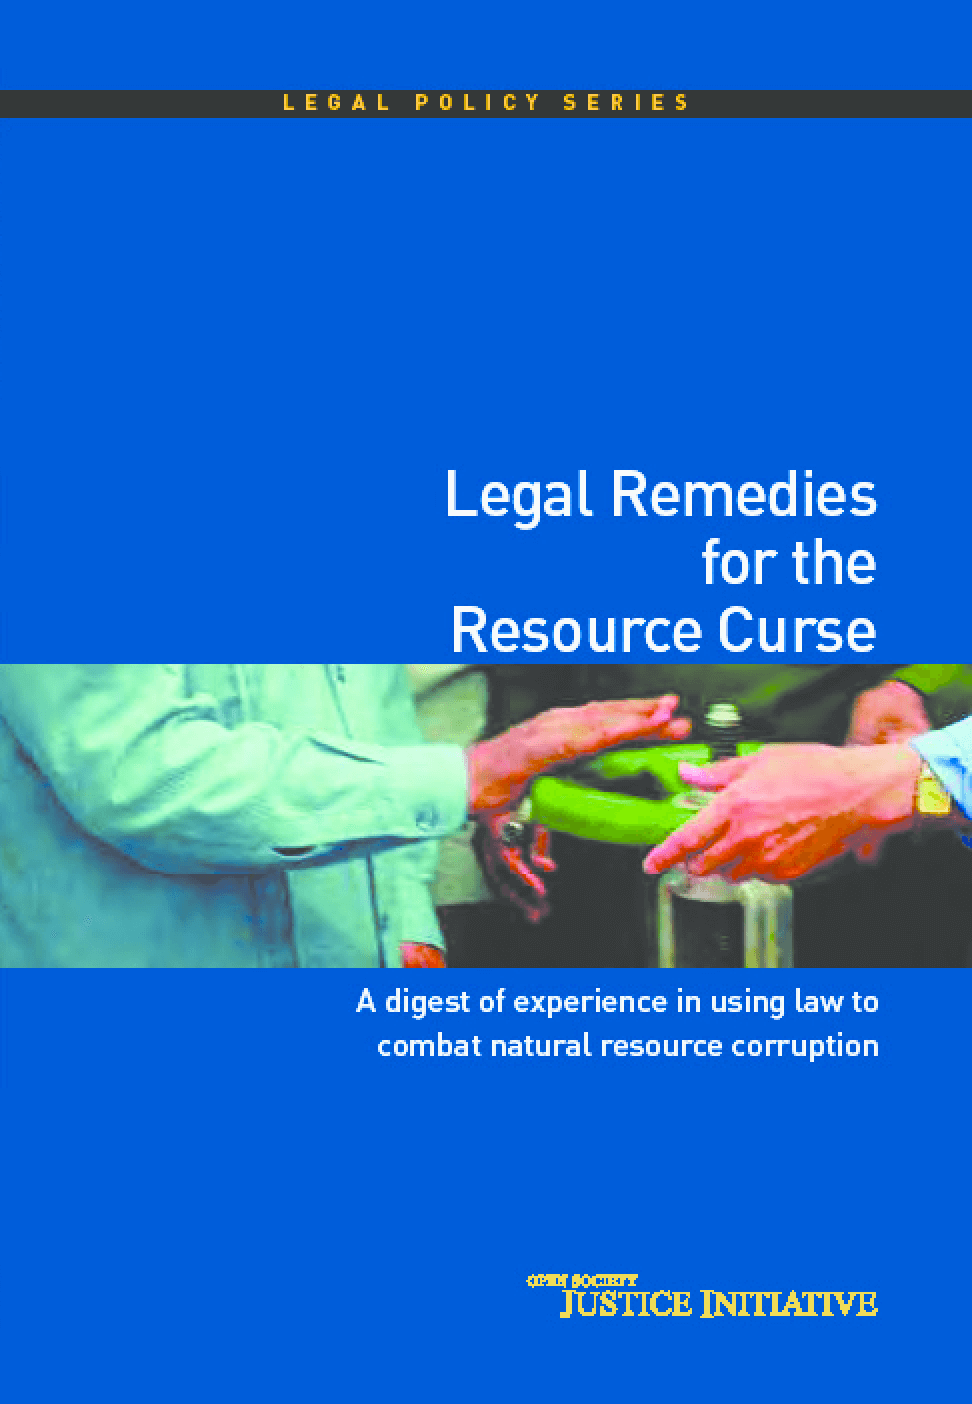 Legal Remedies for the Resource Curse: A Digest of Experience in Using Law to Combat Natural Resource Corruption